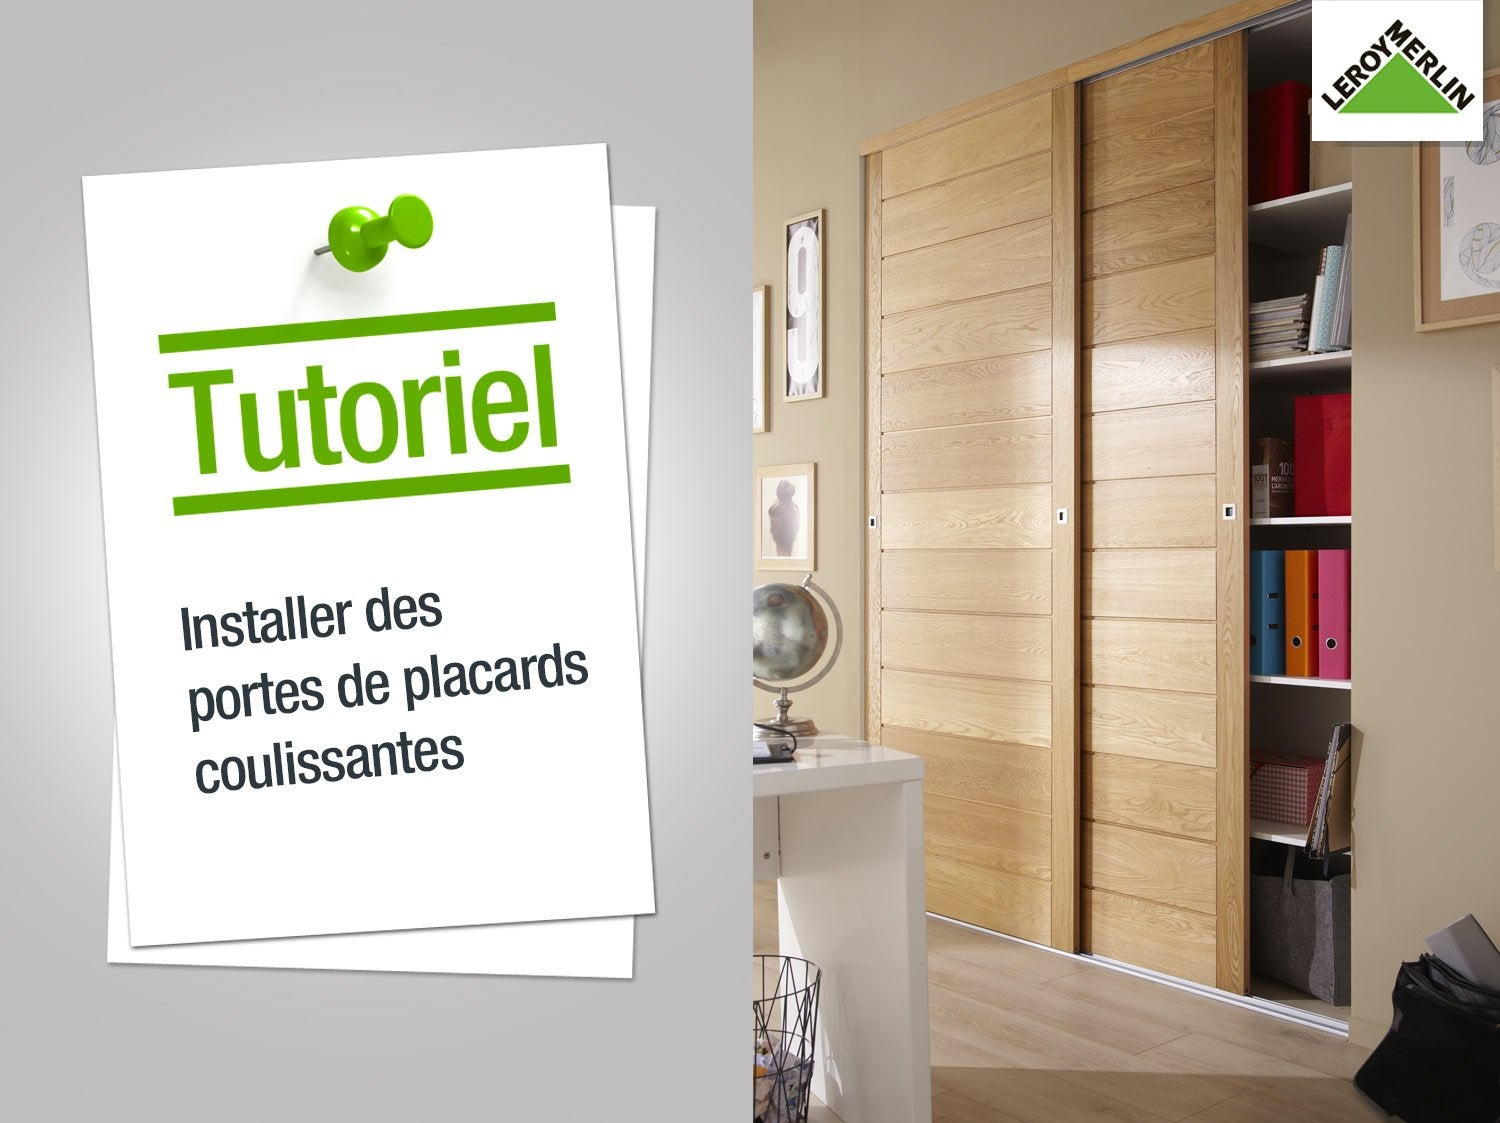 Comment Installer Des Portes De Placards Coulissantes Leroy Merlin